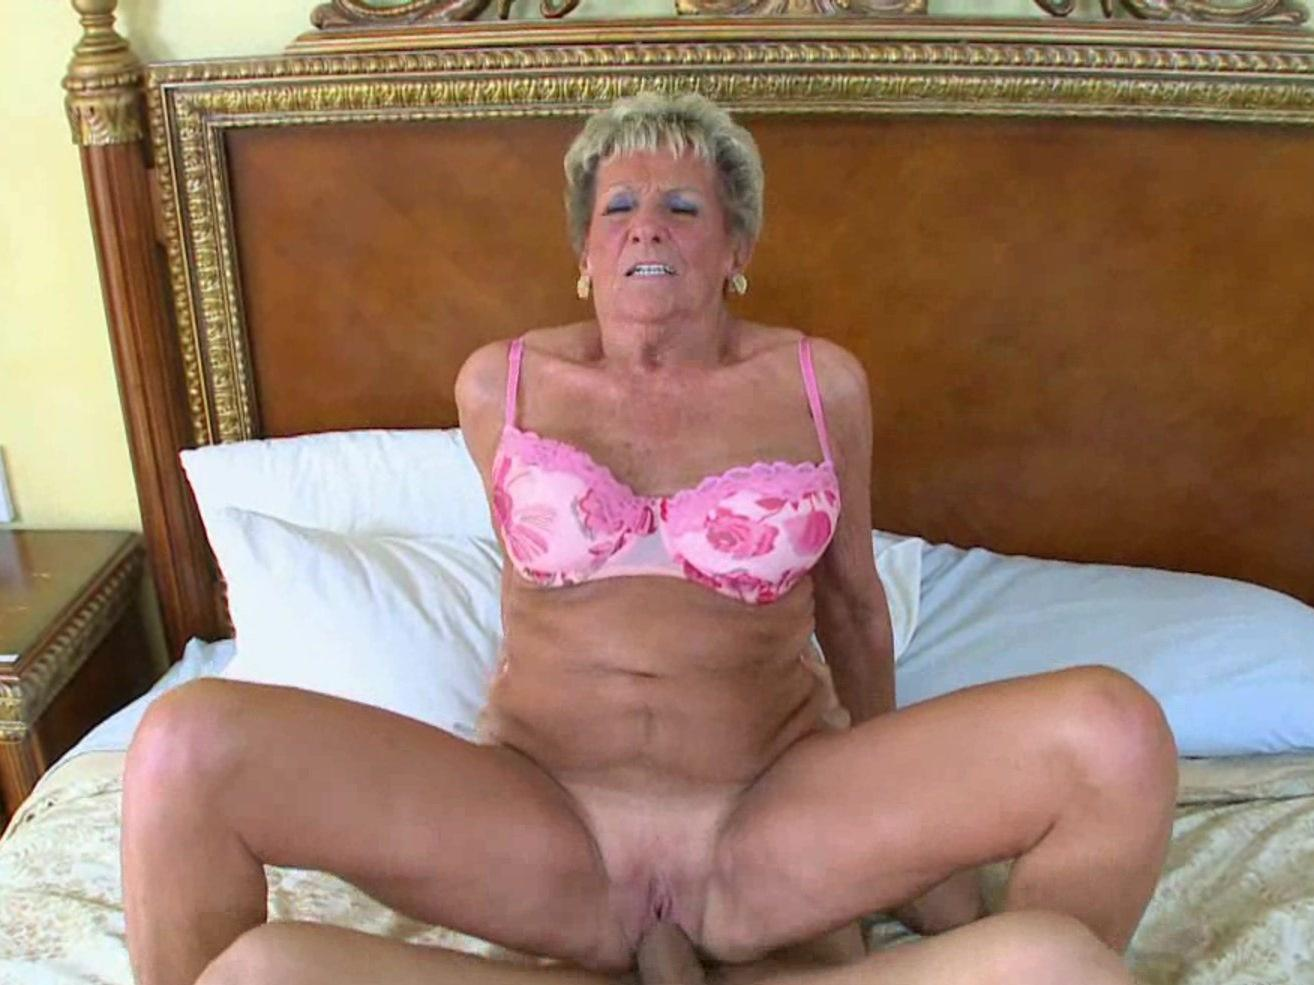 Naked Old Woman Xxx Photos Free Site Comments 3